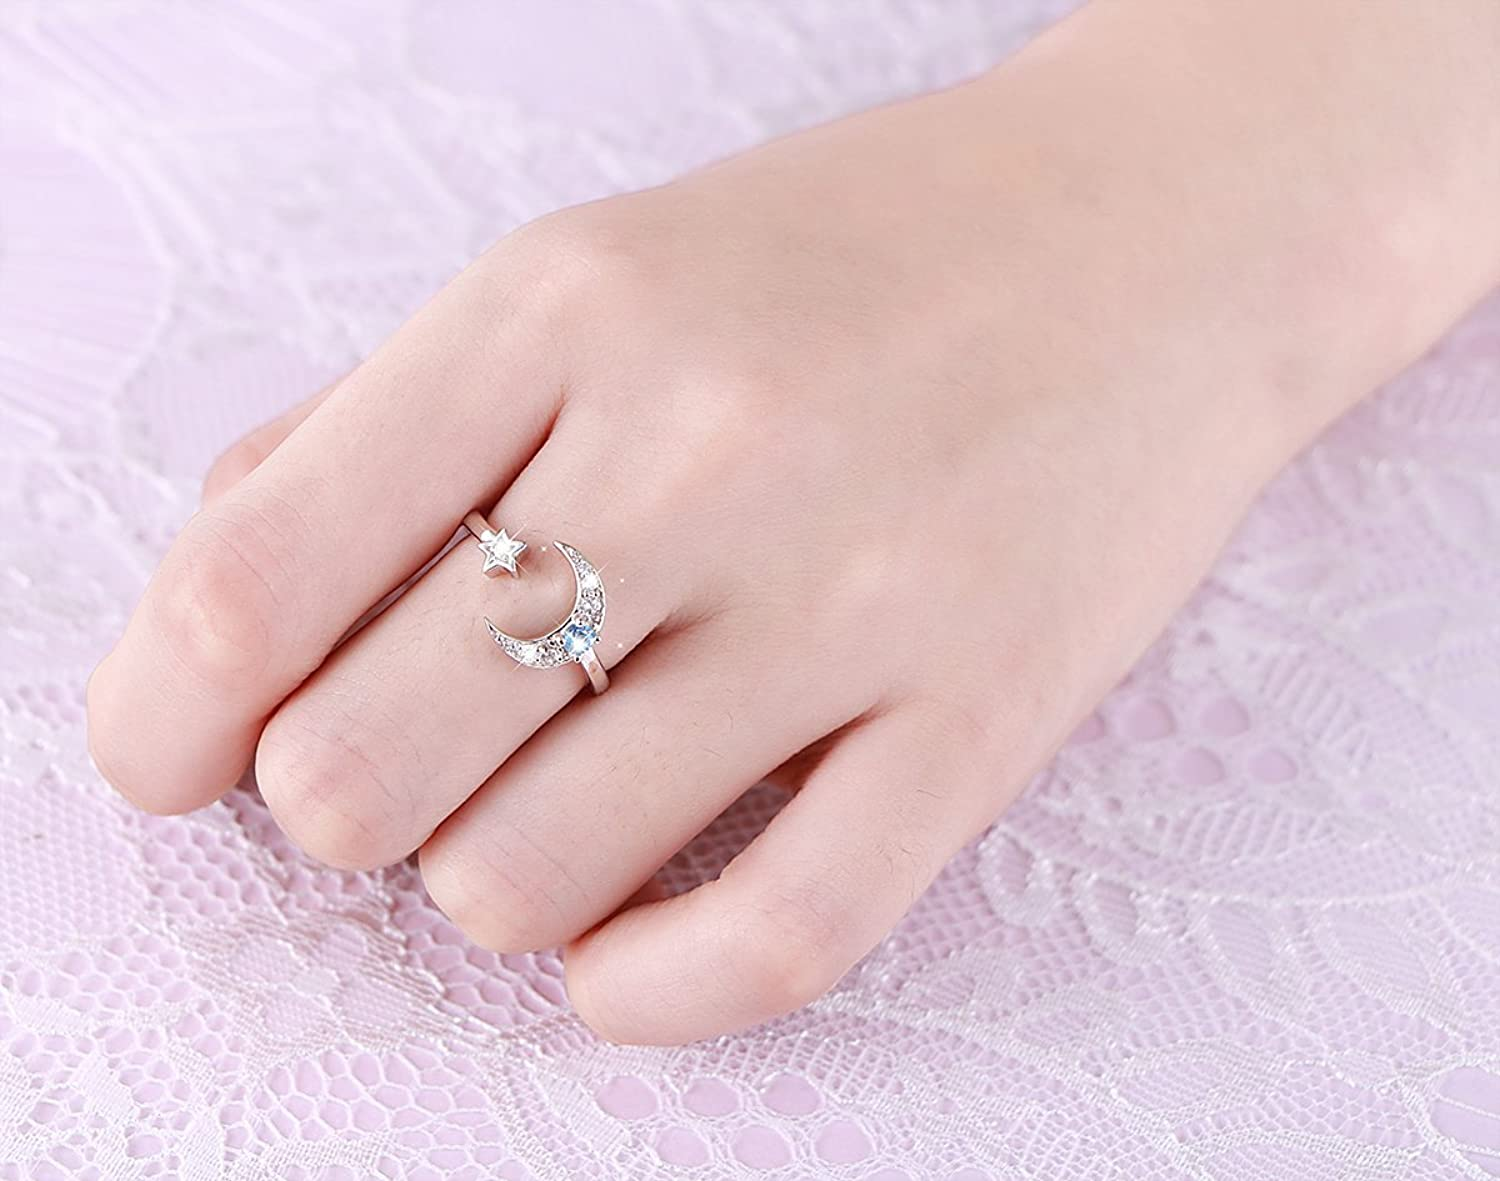 Amazon.com: 925 Sterling Silver Cz Moon Star Open Ring for Women ...